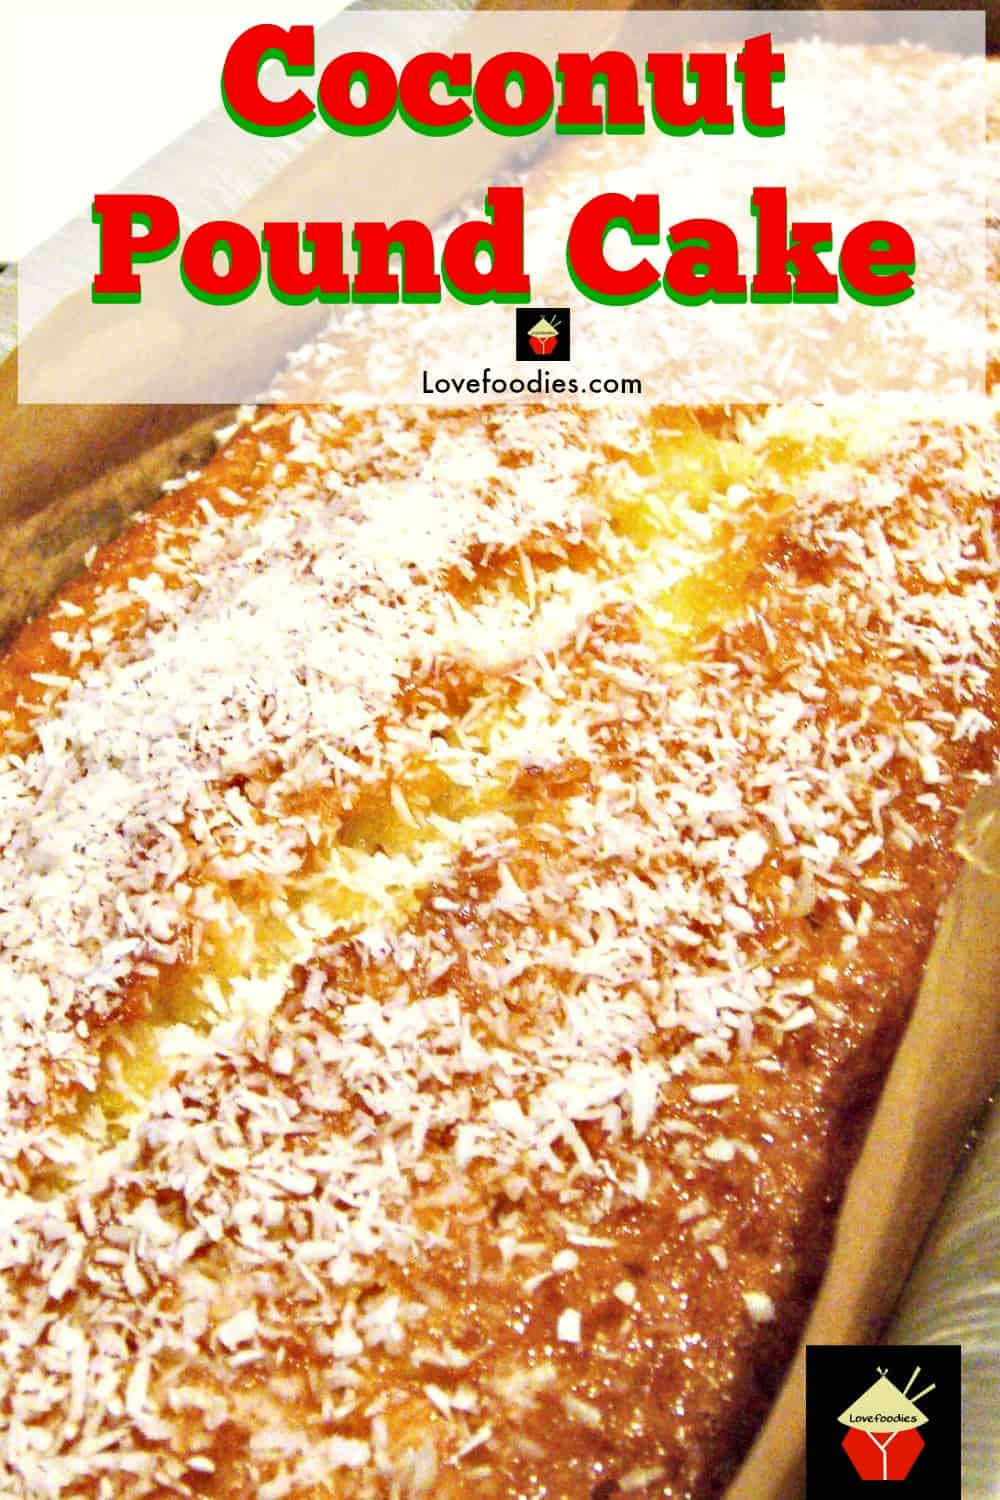 Coconut Pound Loaf Cake. Light, soft, and oh so delicious! Really easy recipe with great results every time